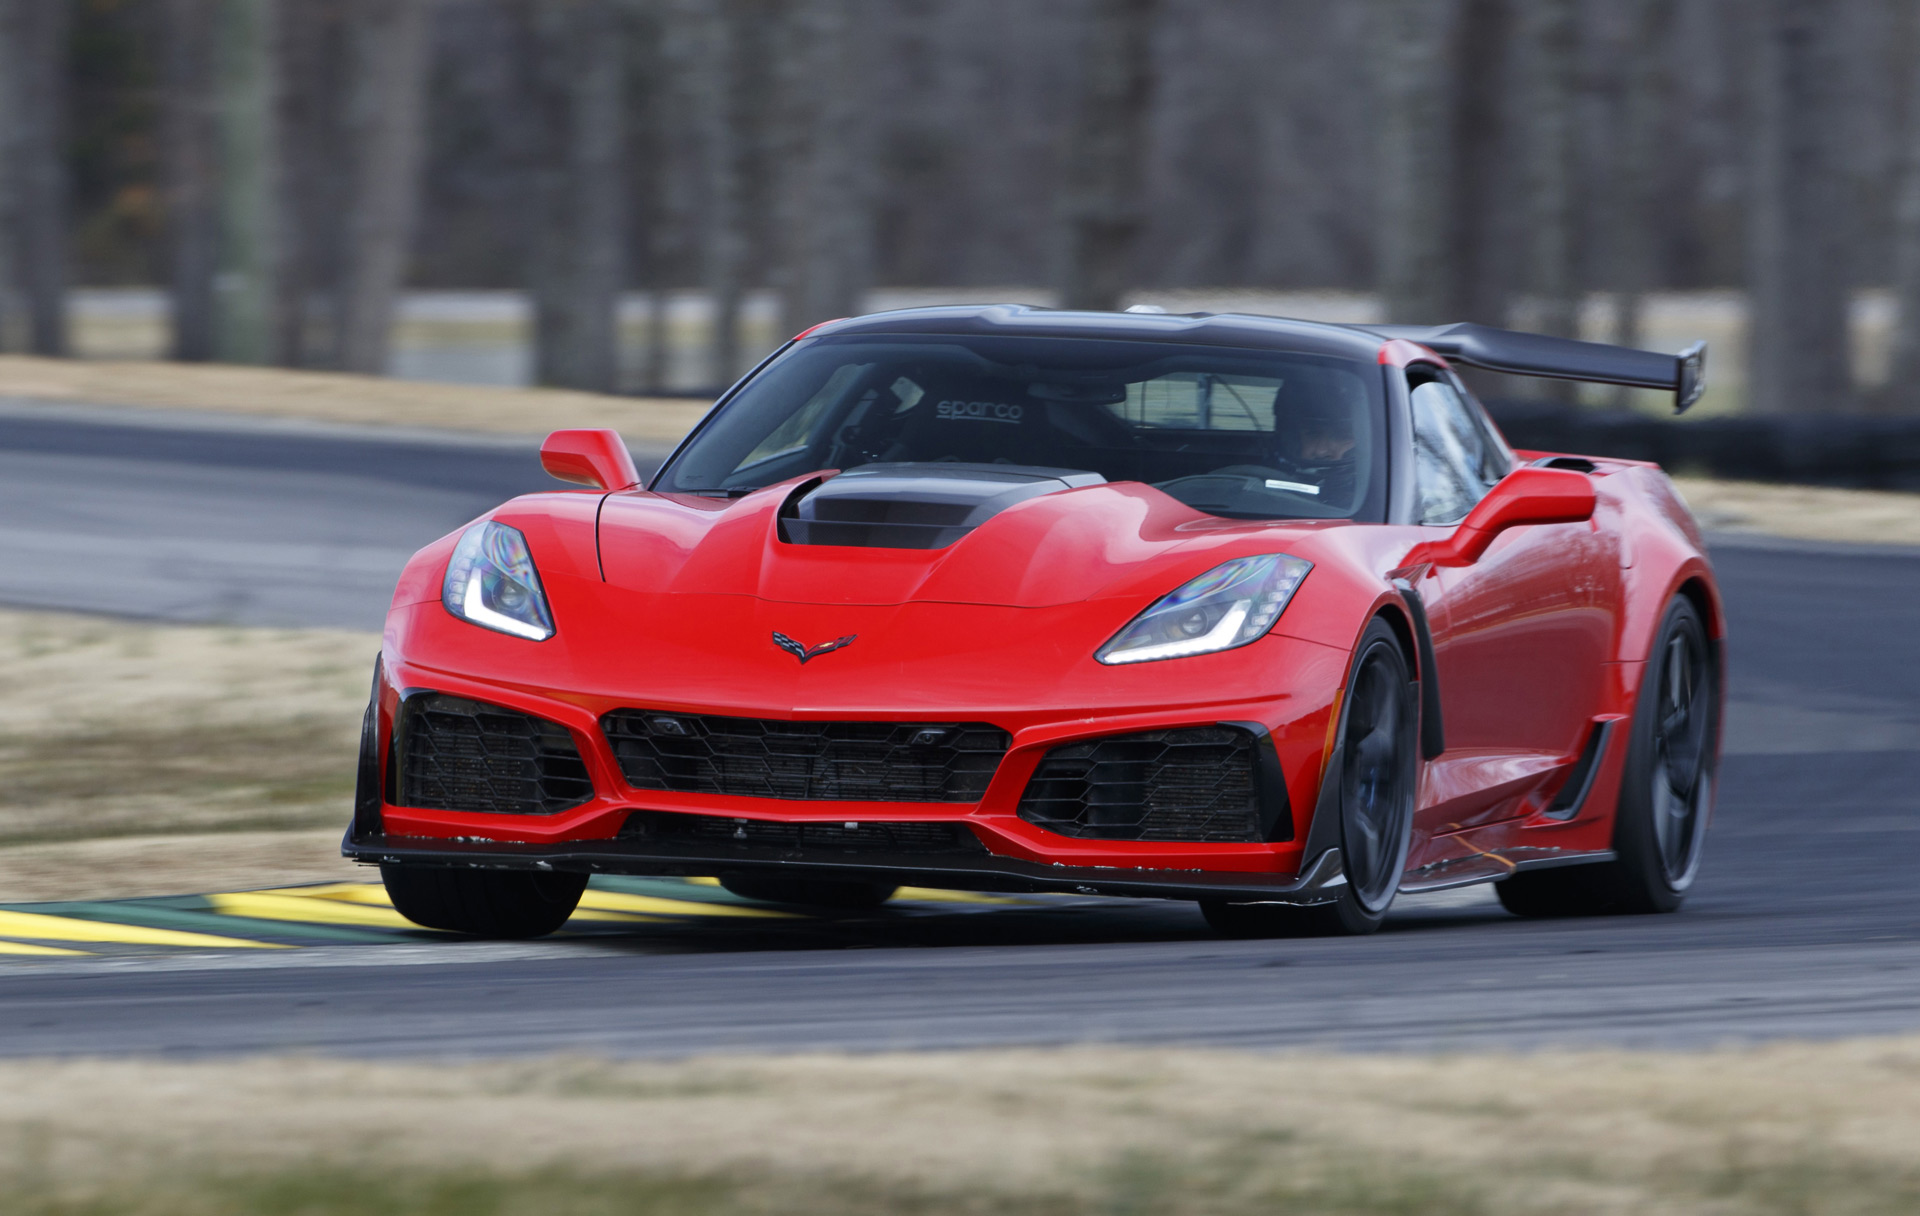 2019 Corvette Zr1 Specs Confirmed Including 0 60 Mph Time Of 2 85